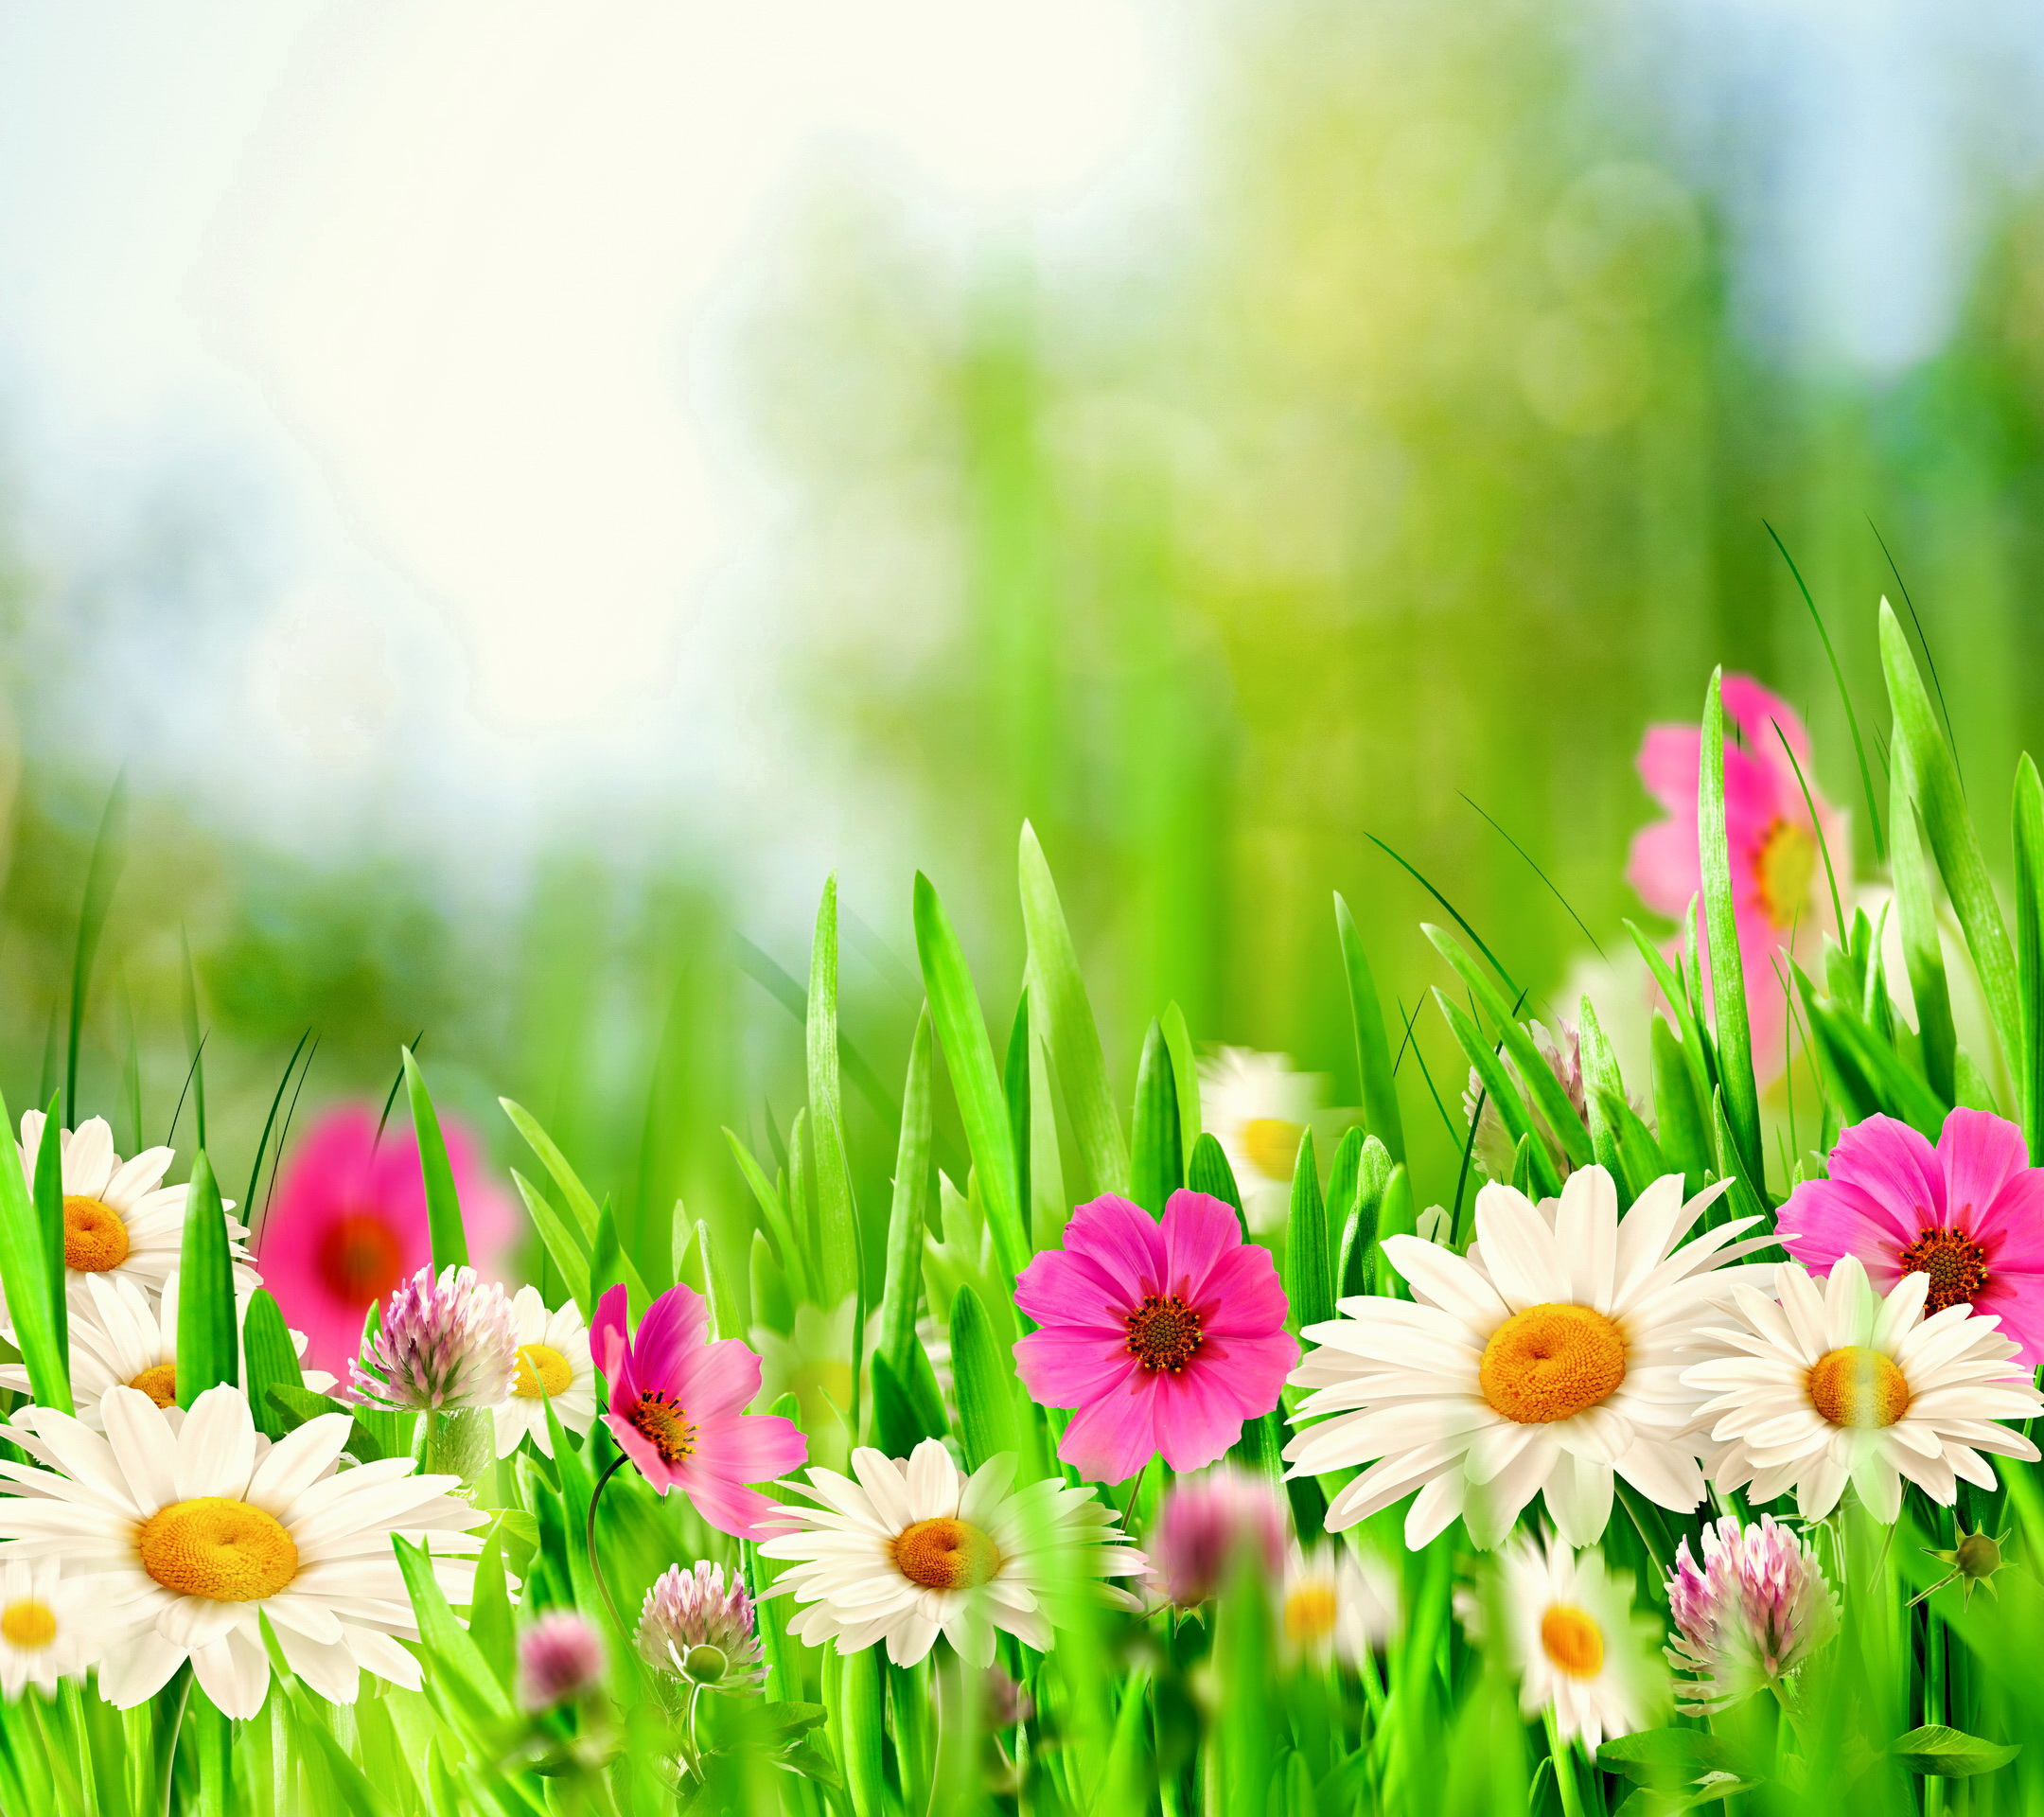 Spring Meadow HD HD Samsung Galaxy S5 Wallpapers free download 2160x1920